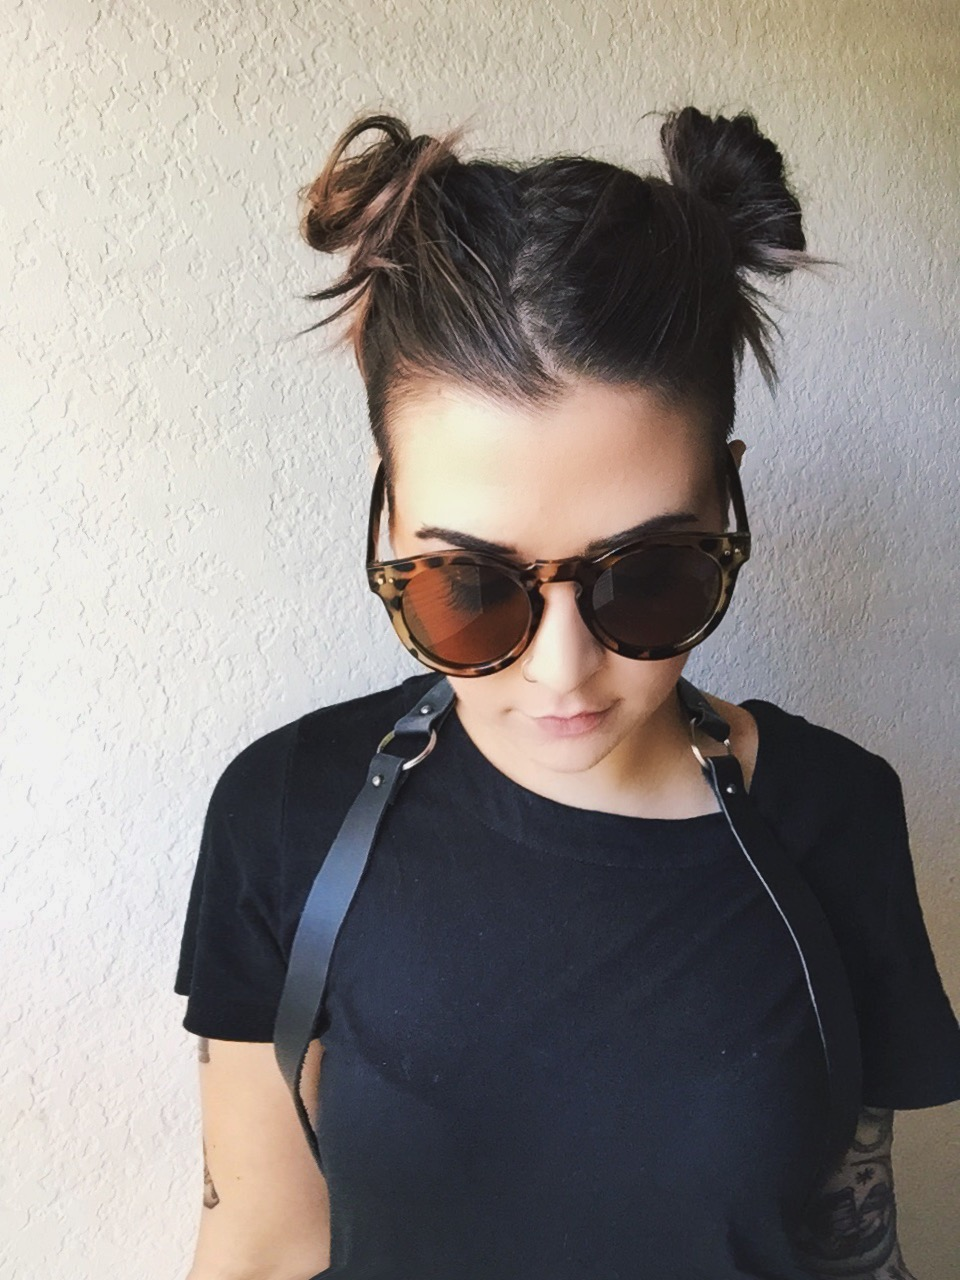 How To Style An Undercut 5 Simple Ways Girrlscout